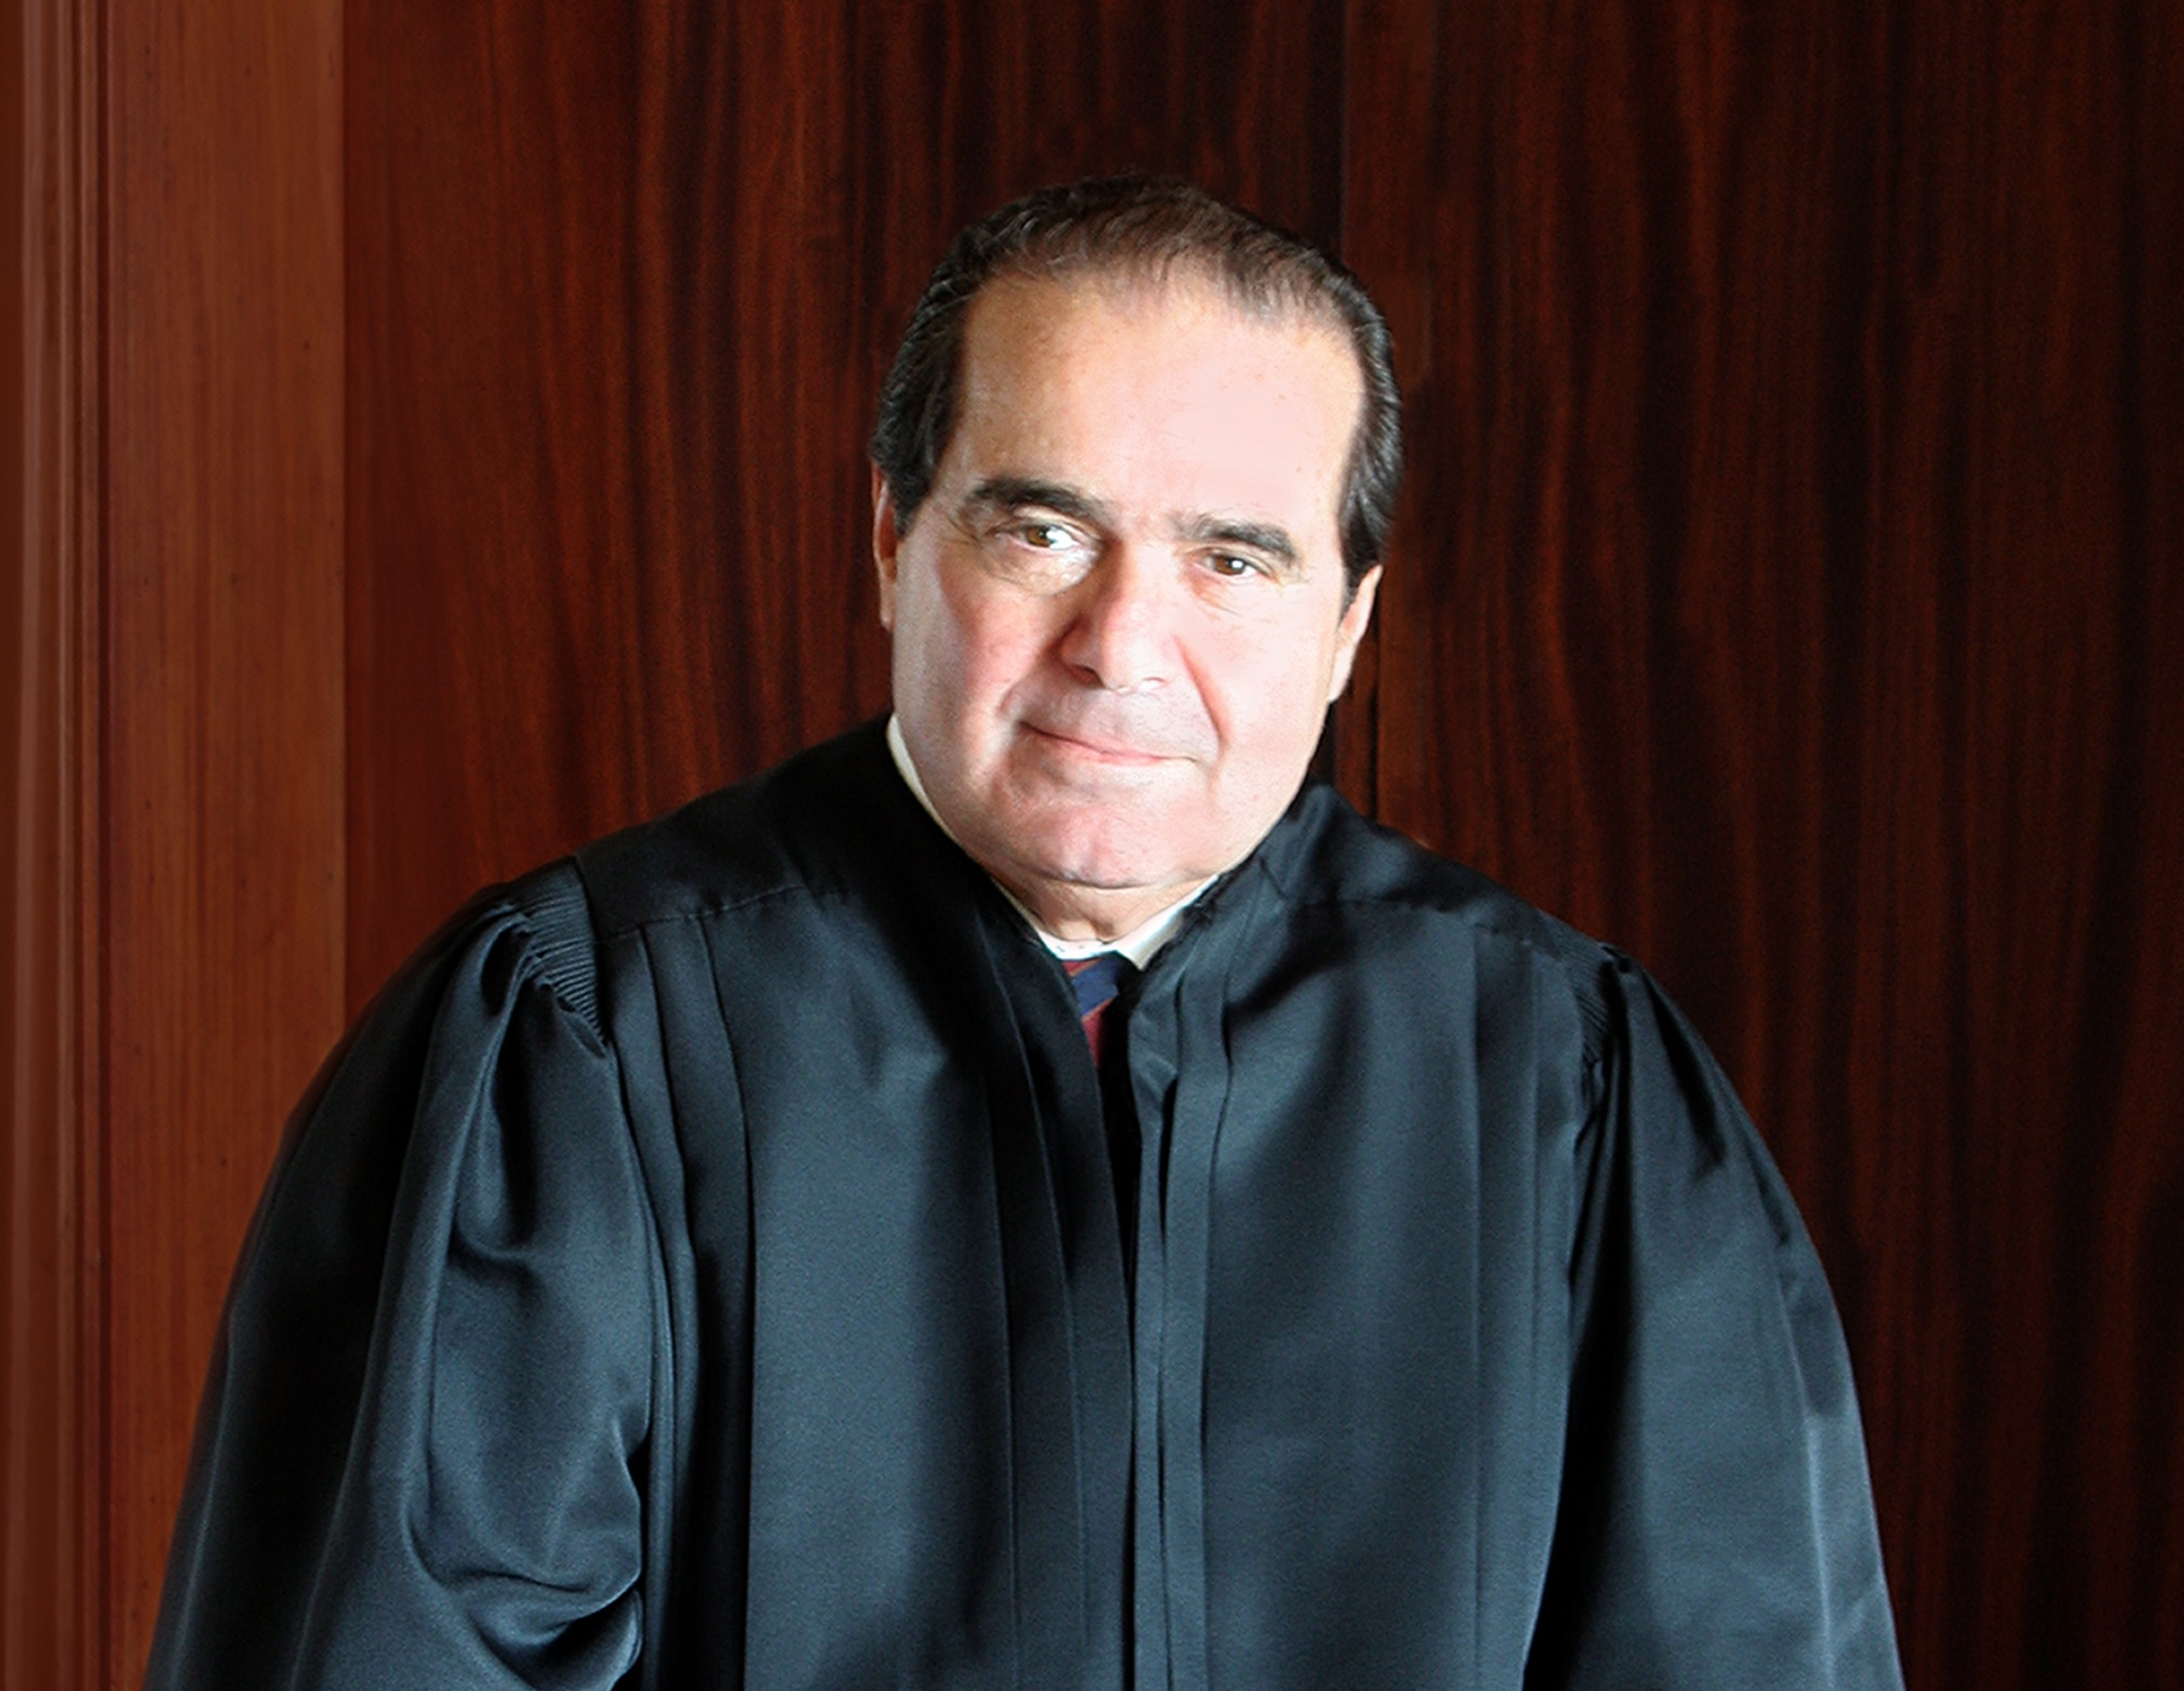 Supreme Court Justice Antonin Scalia was one of the justices making the occasional joke today. (Courtesy: U.S. Supreme Court)